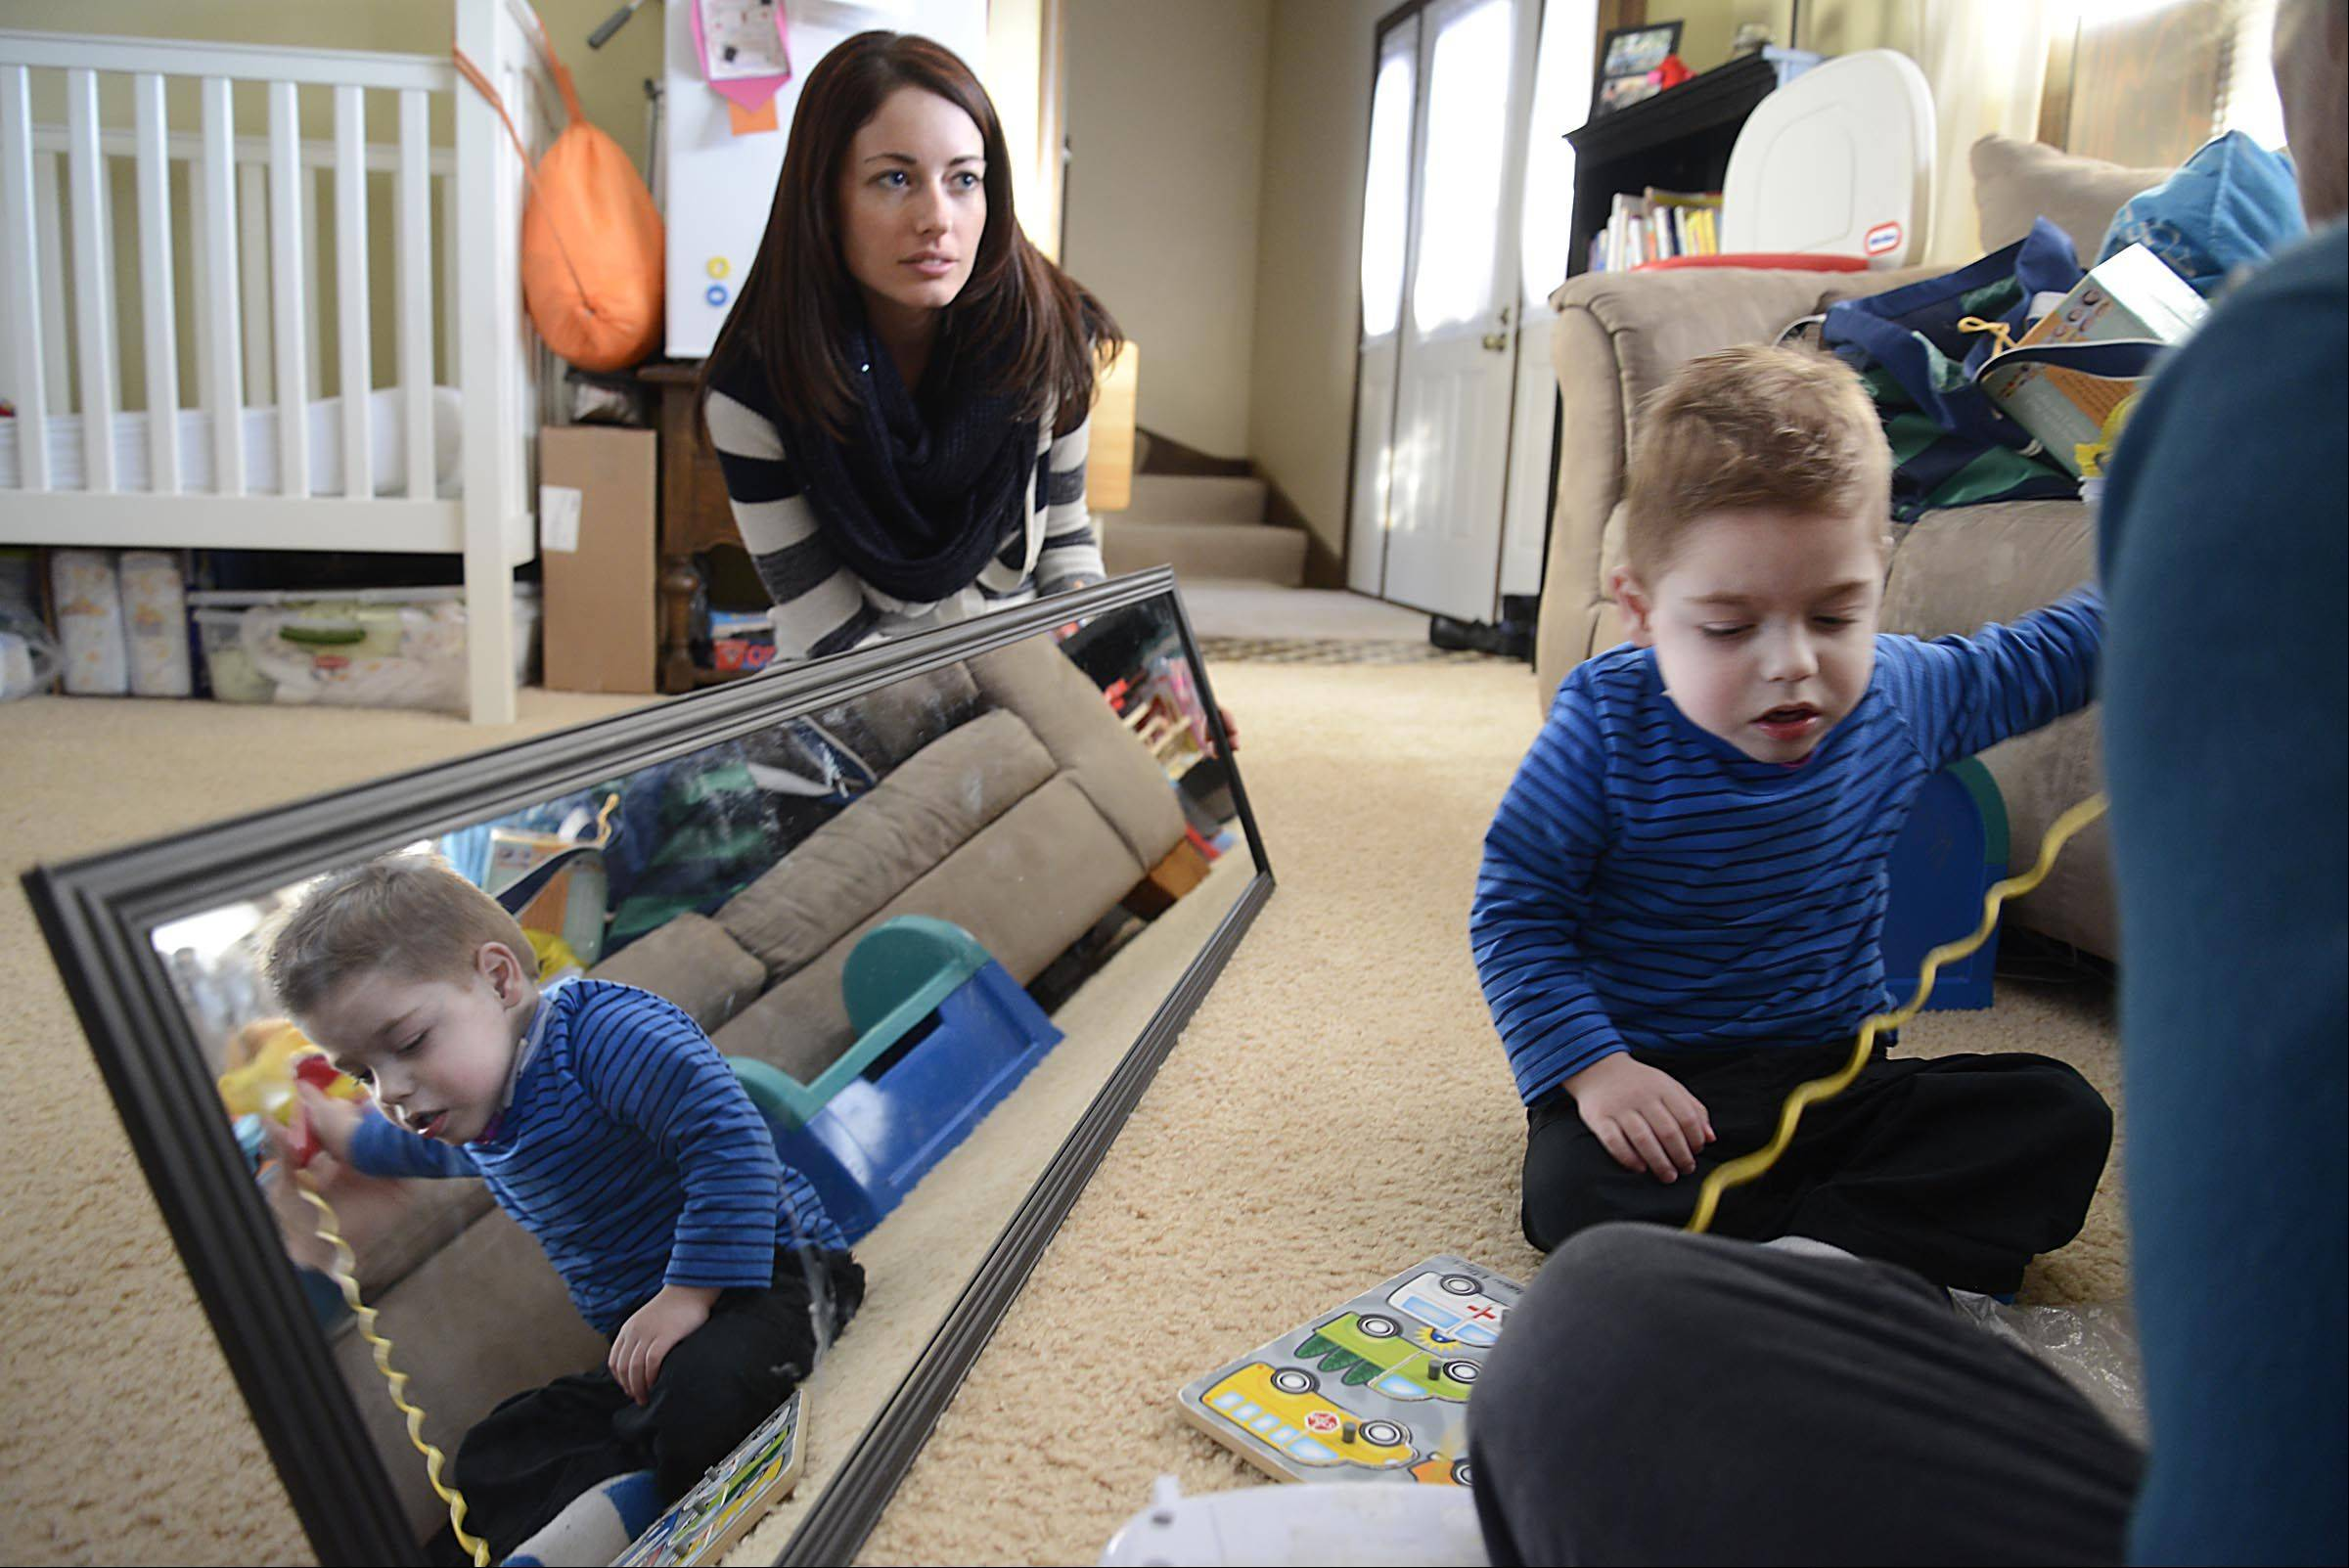 Jennifer Rigler holds a mirror and watches as her son Andrew works with therapist Mary Kochanski in their Bartlett home. The two-year-old was born prematurely and has therapy to promote his development.